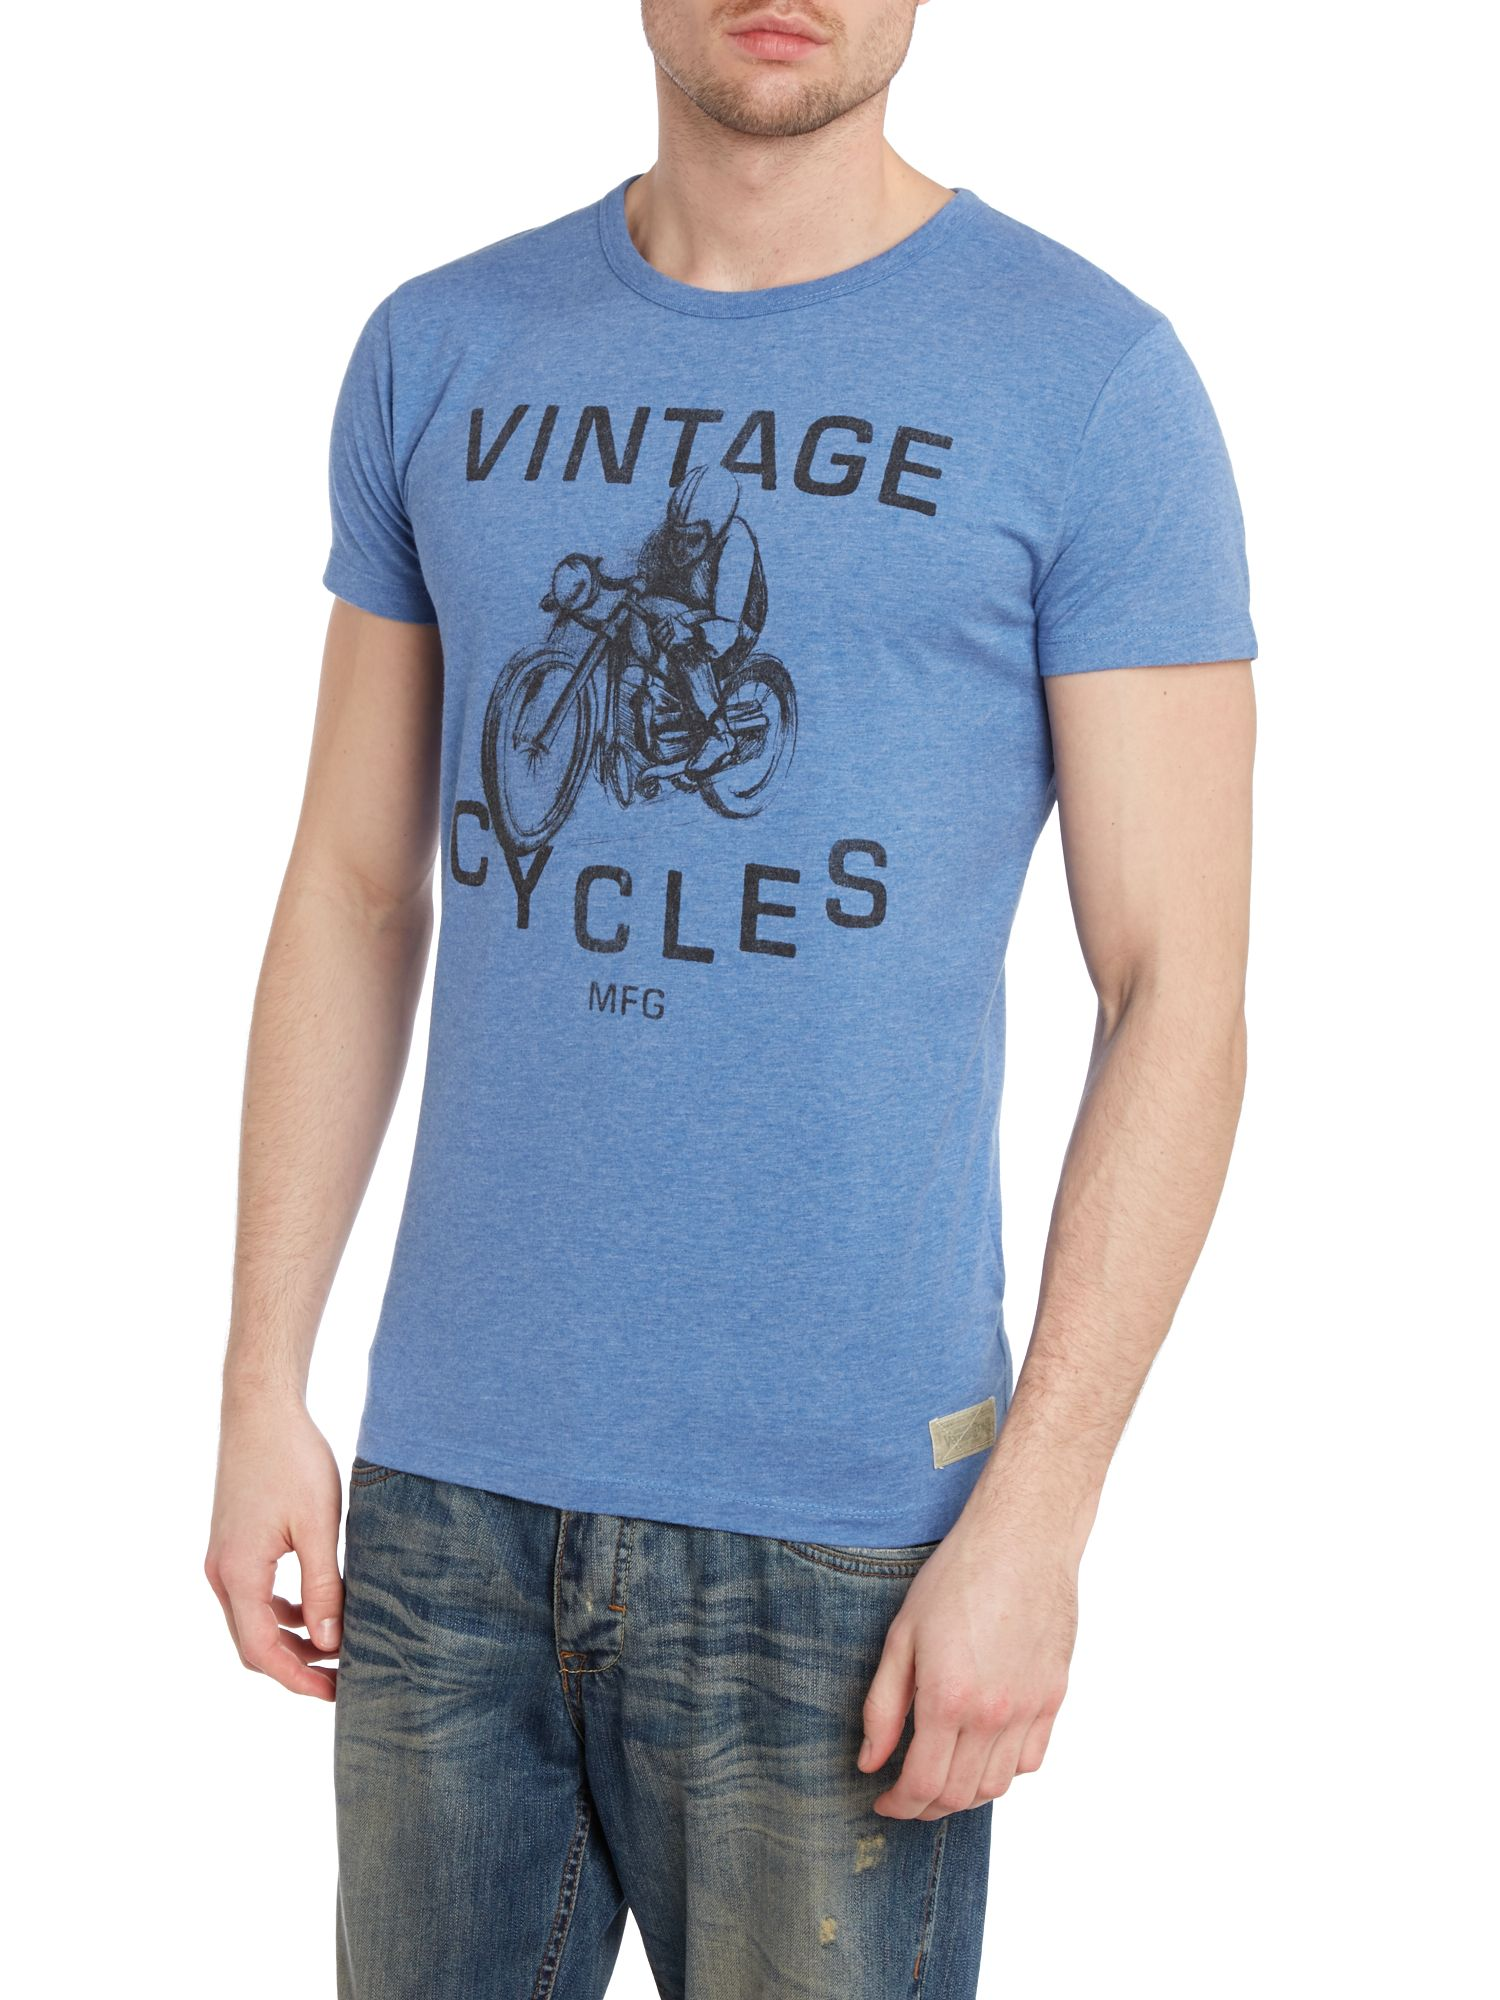 Vintage cycles graphic t-shirt